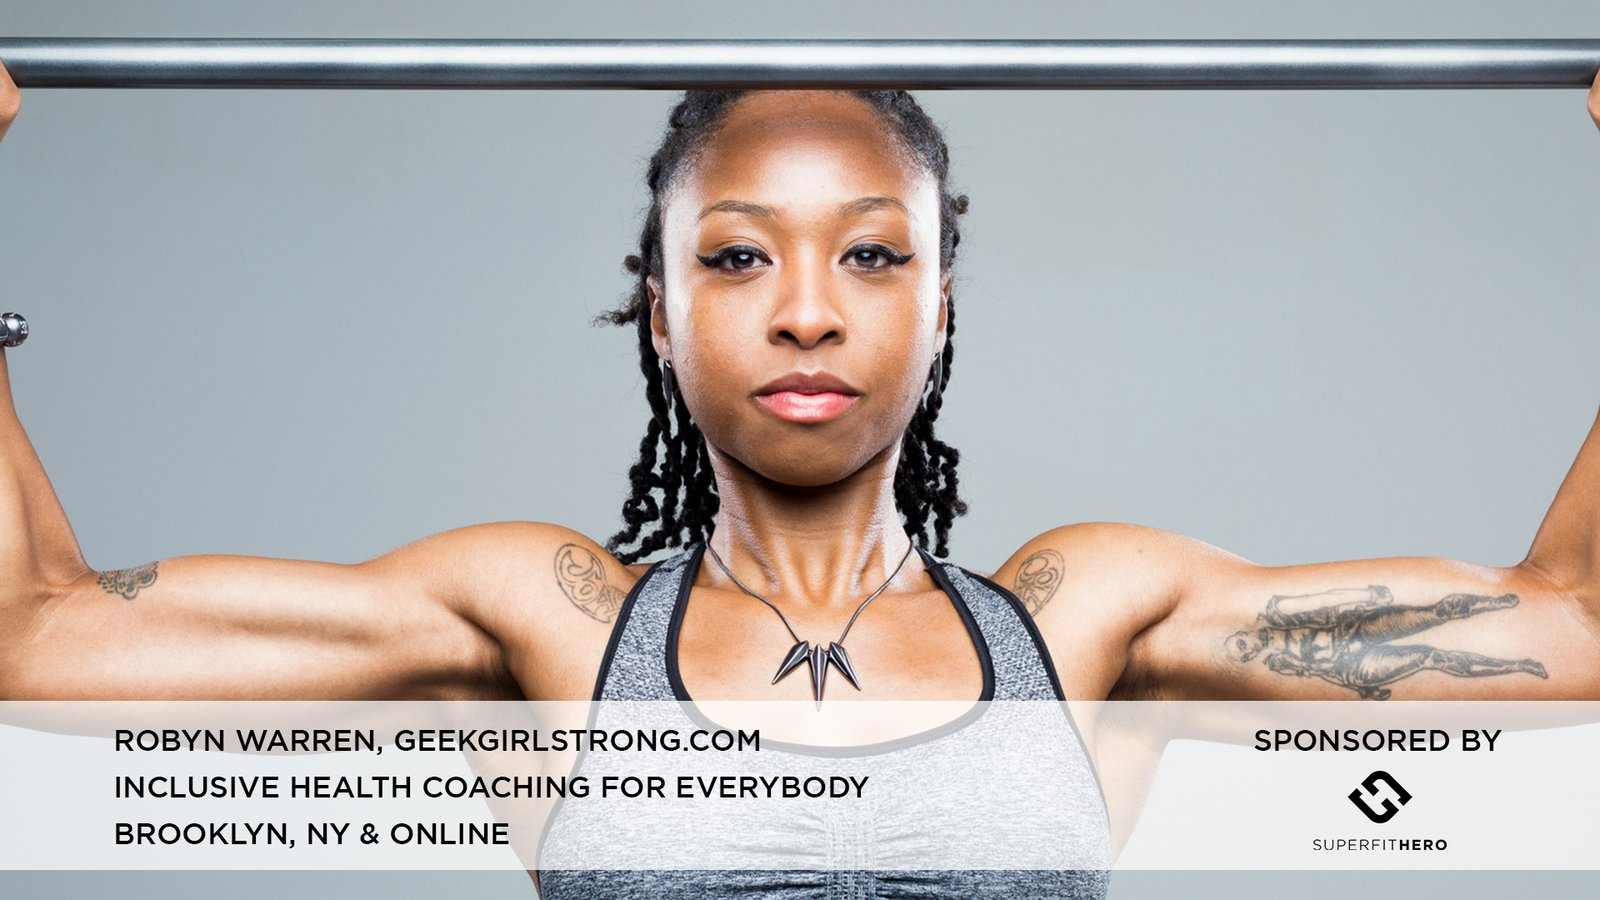 SUPERFIT SPONSORED TRAINER ROBYN WARREN  Superfit Hero is proud to sponsor body positive trainers and gyms from around the world. Our goal is to connect people to body positive resources near them. We interviewed Robyn Warren, founder of  Geek Girl Strong . Robyn's training, based in Brooklyn, New York, is catered to women (and some men) who want a nontraditional experience in their gym. Robyn's clients consist of people of all levels of fitness and a common interest in all things geeky!  April 04, 2018